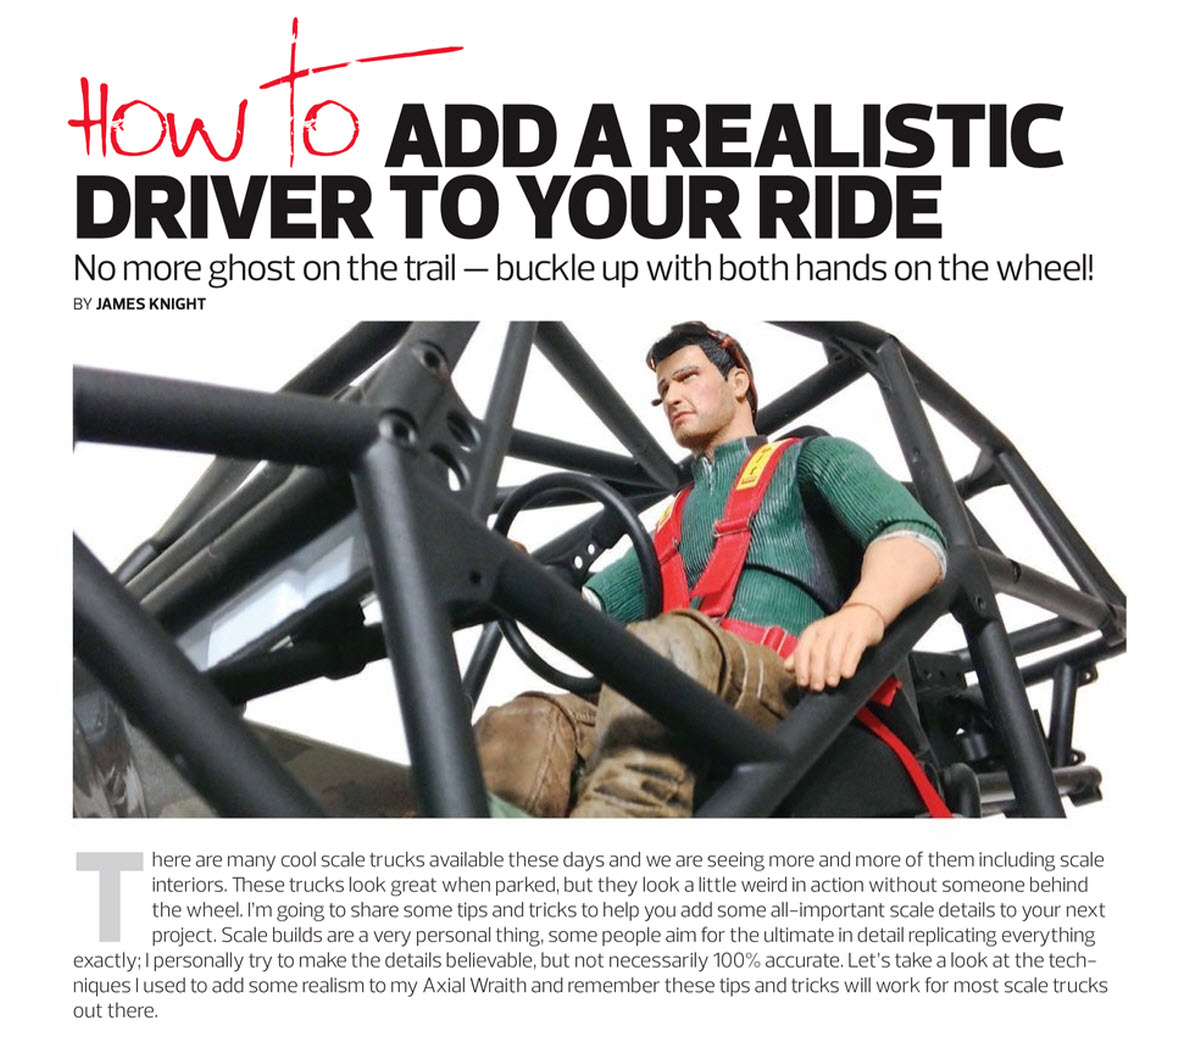 How To Add A Realistic Driver figure 1